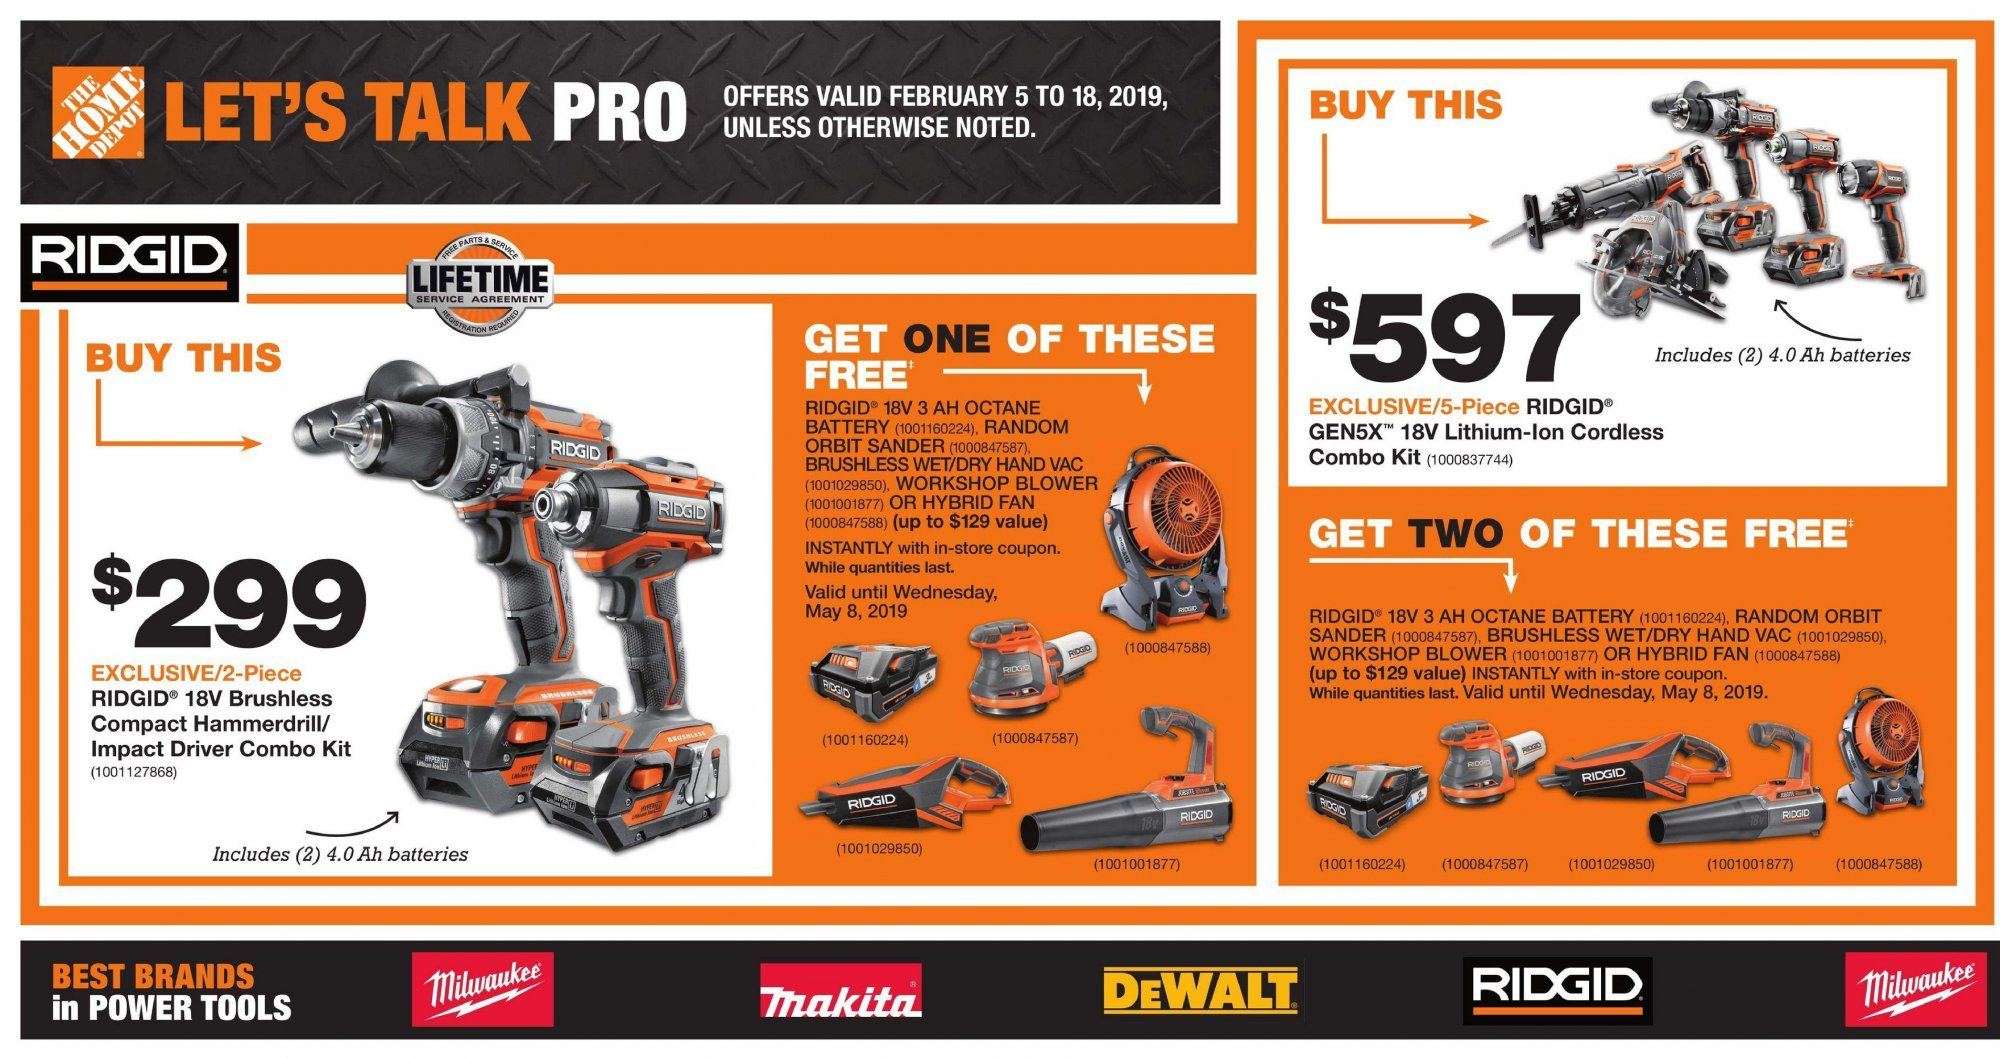 Home Depot Flyer - February 05, 2019 - February 18, 2019 - Sales products - battery, cordless combo kit, dewalt, random orbit sander, impact driver, power tools, milwaukee, ridgid, combo kit, orbit. Page 1.